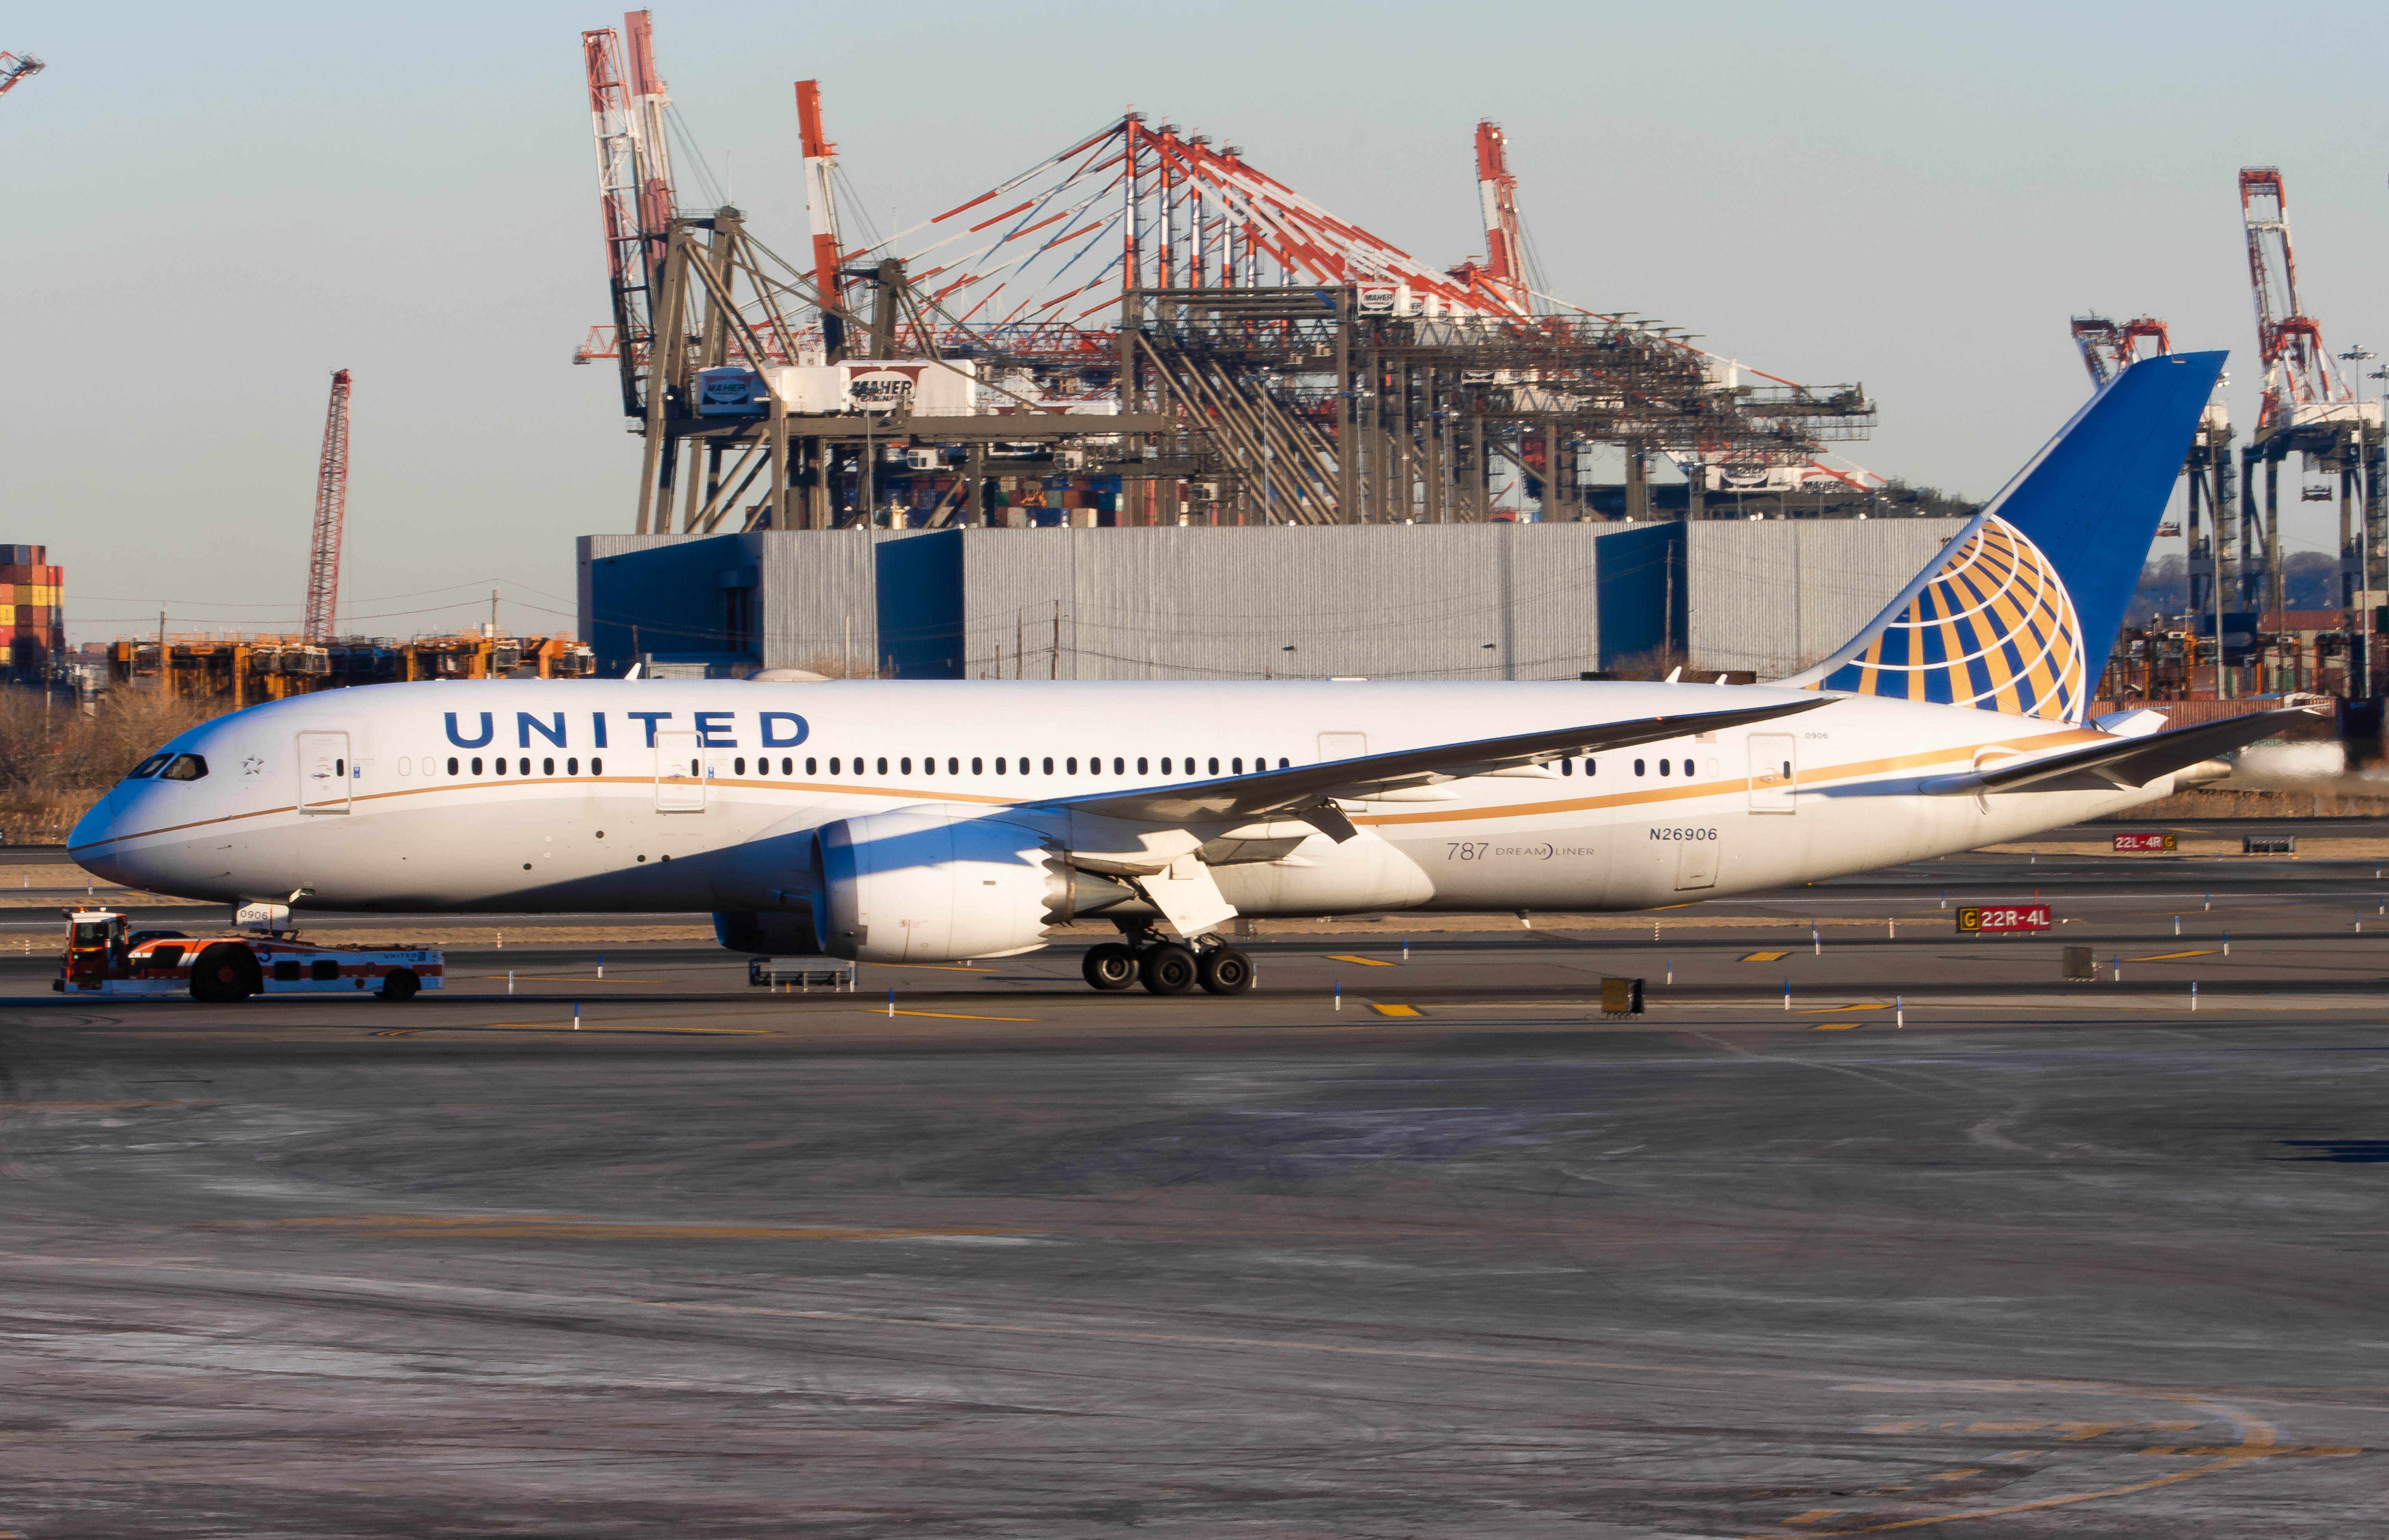 Photo of N26906 - United Airlines Boeing 787-8 at EWR